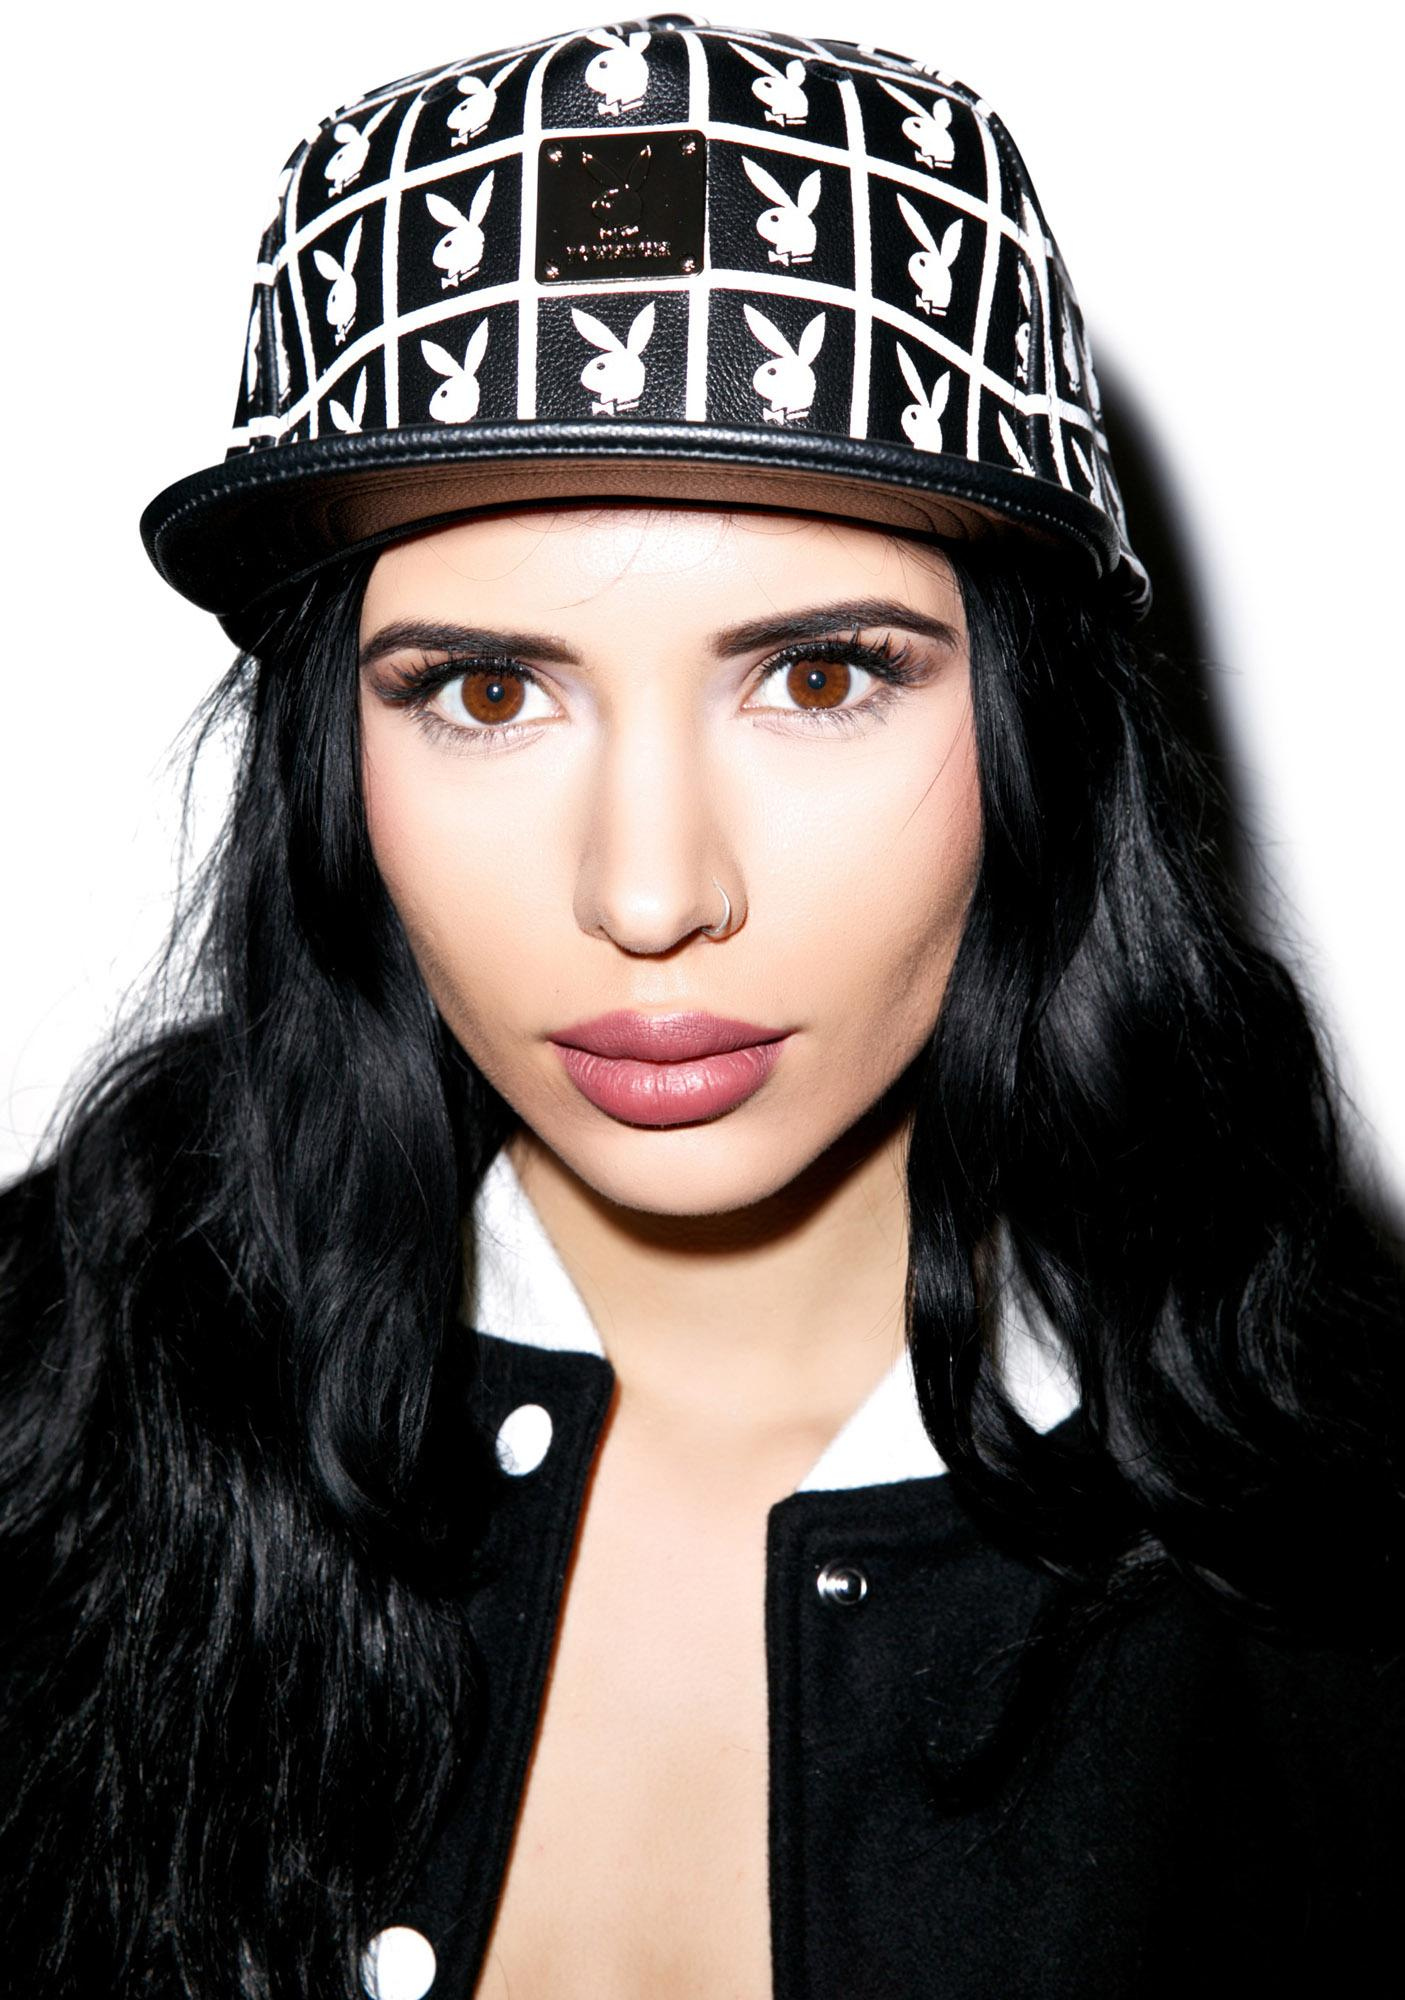 Joyrich X Playboy Panel Snapback